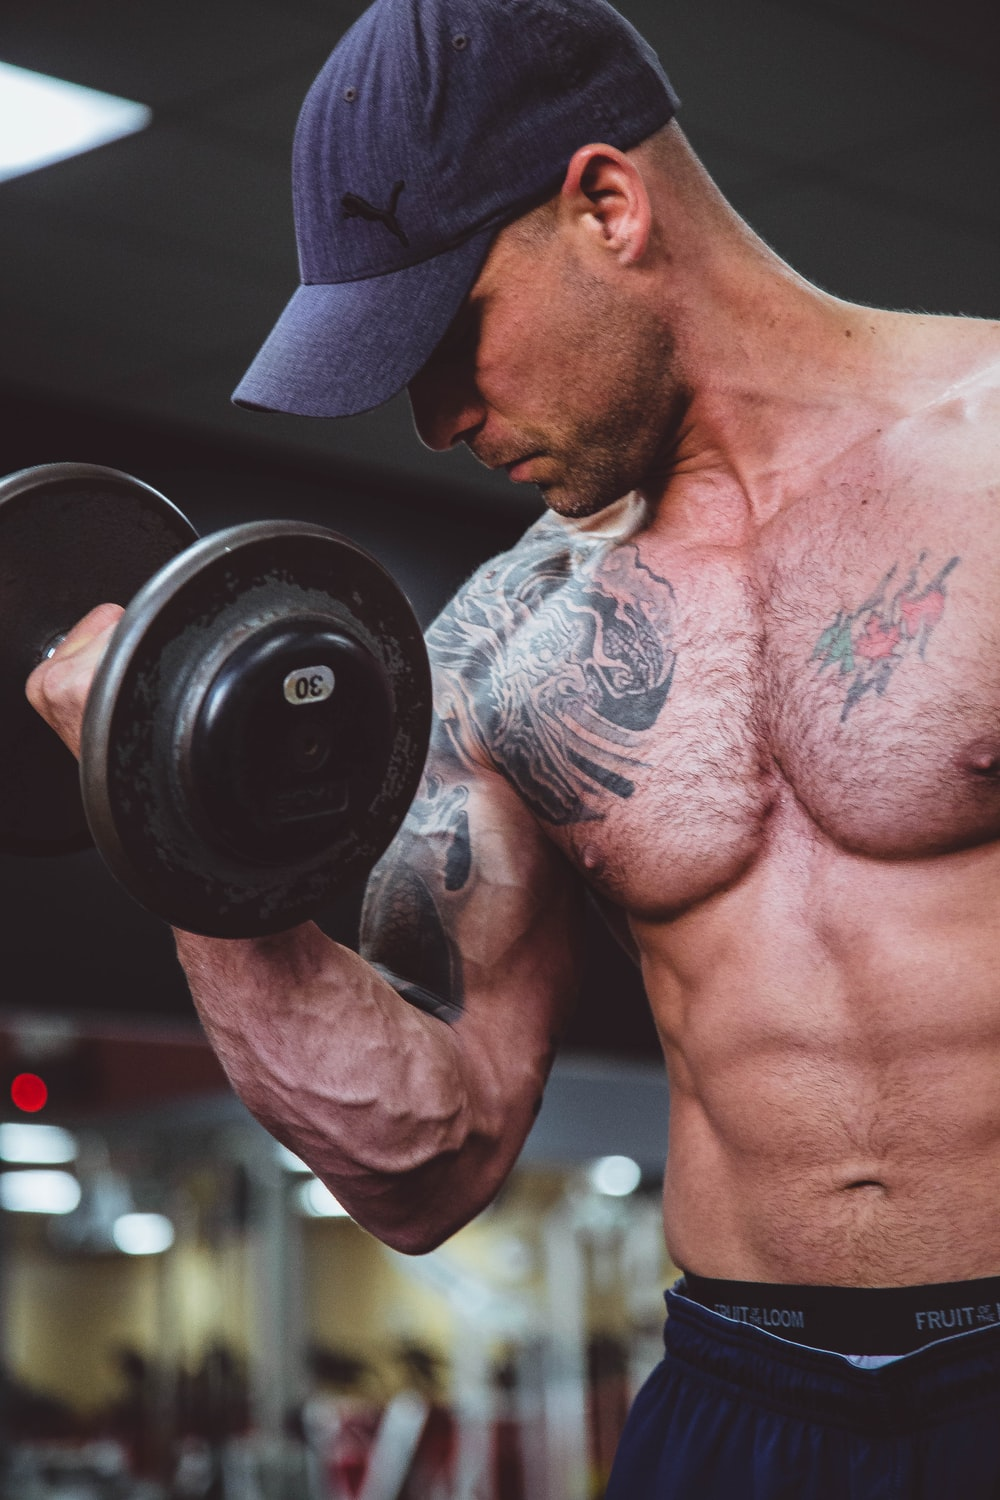 Bodybuilding Pictures [HD] | Download Free Images on Unsplash